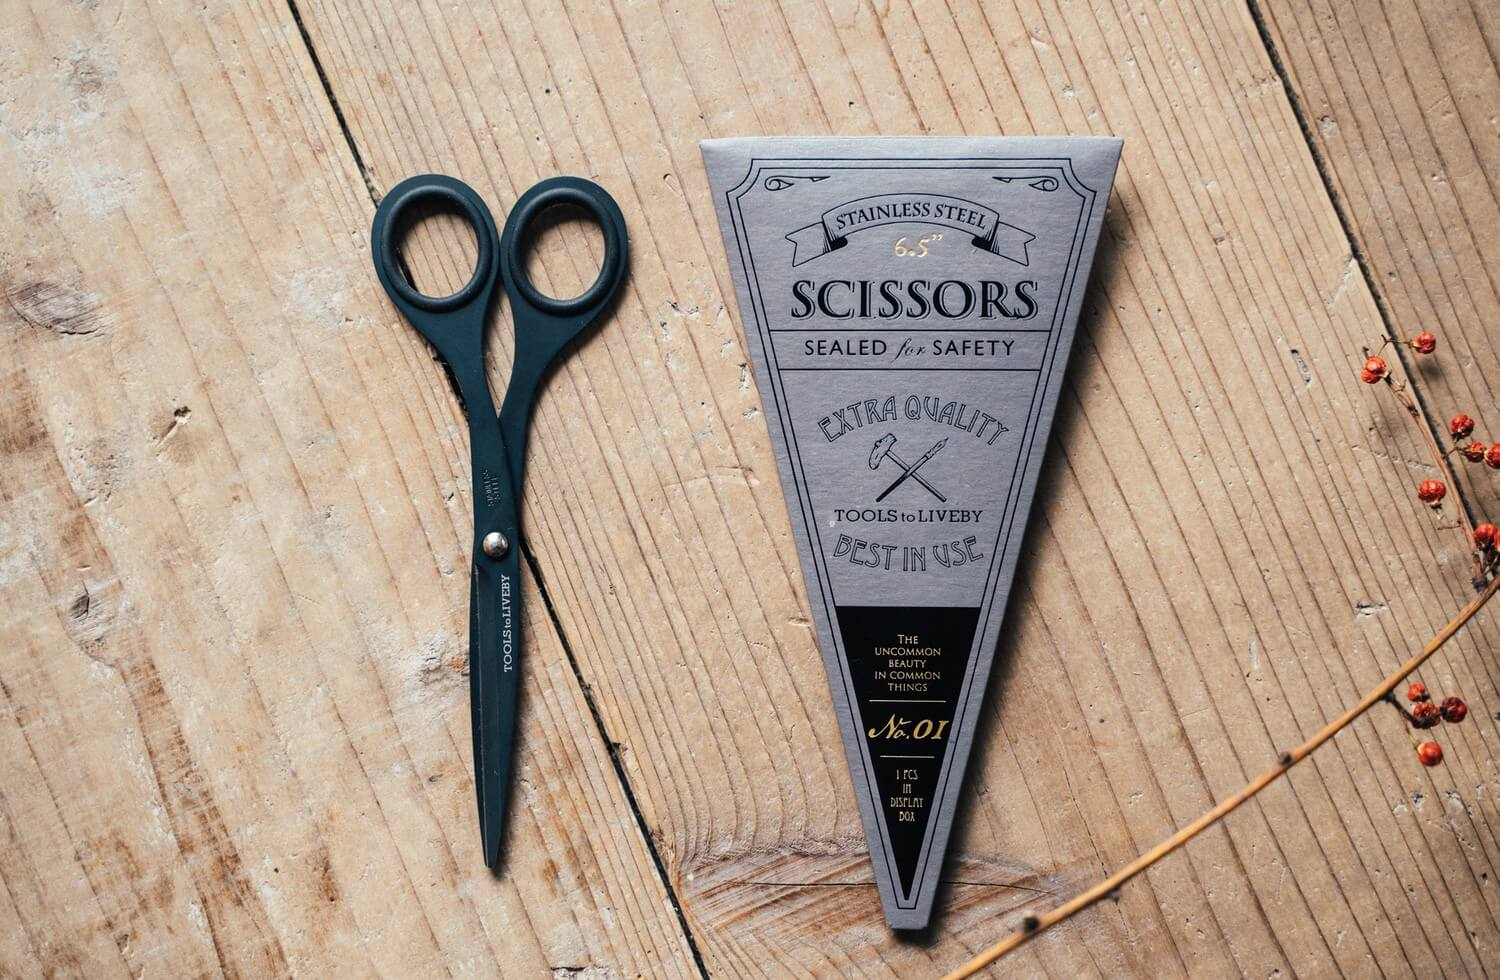 Tools to liveby scissors 0007